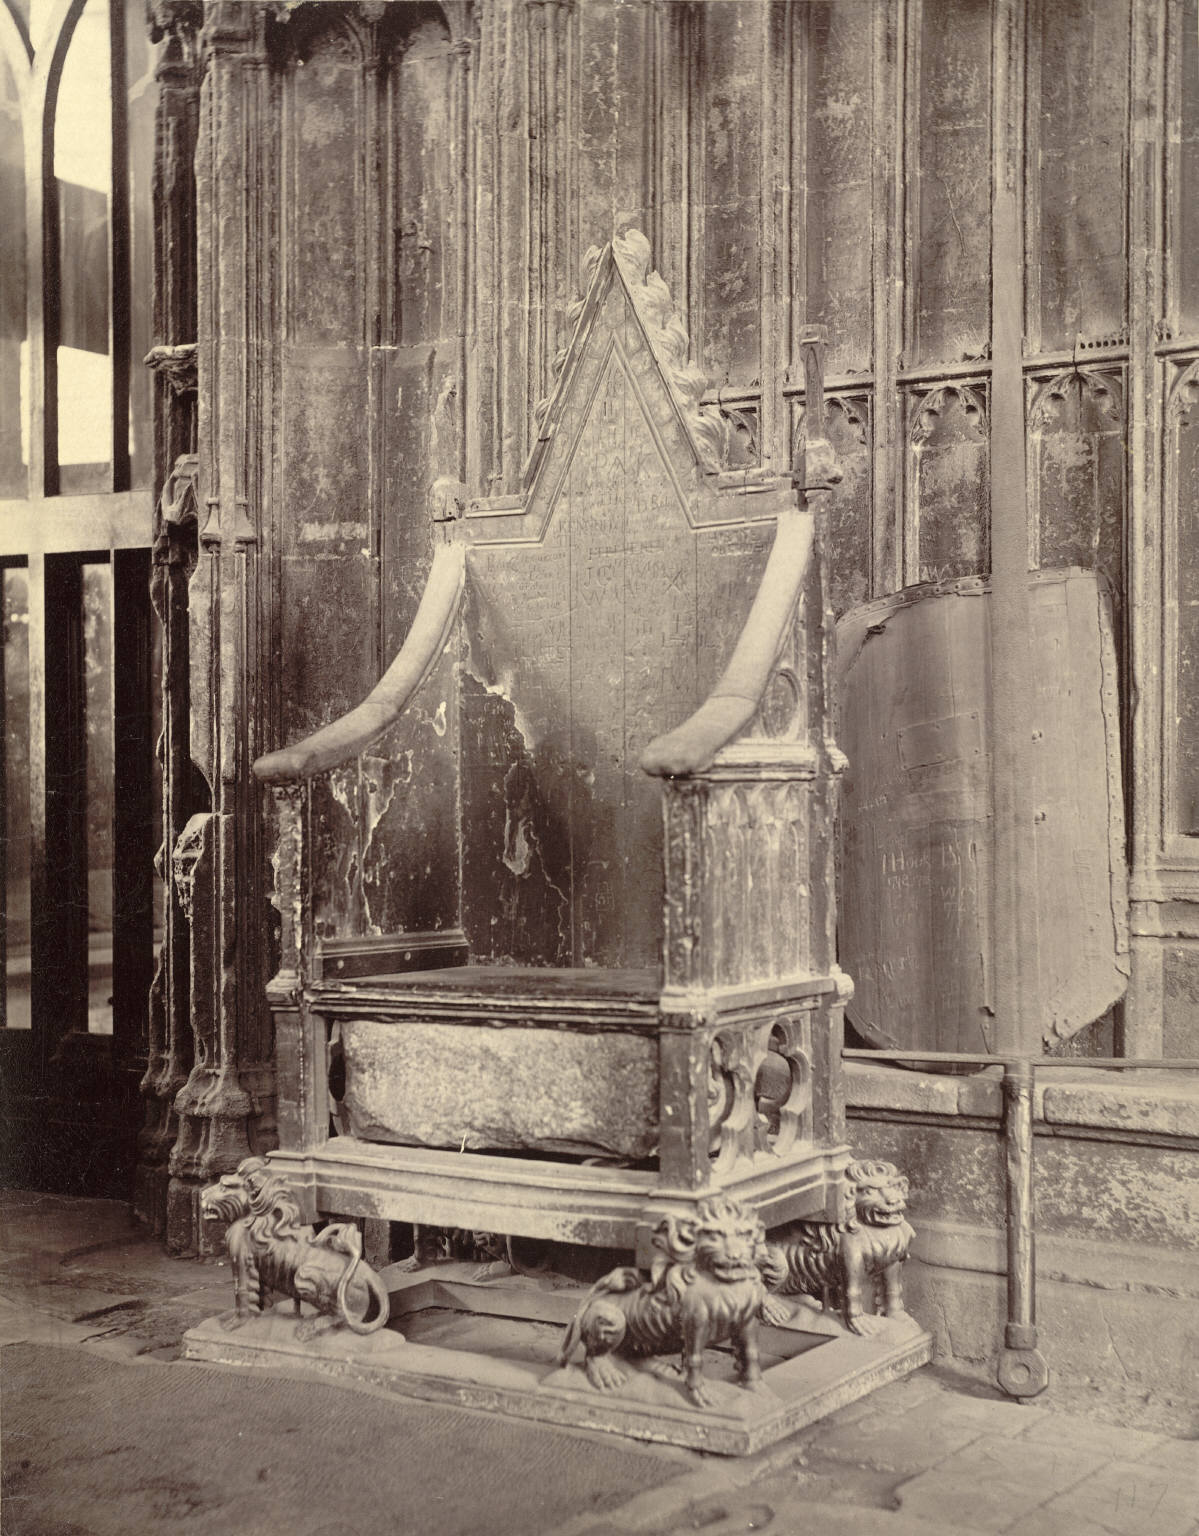 FileCoronation Chair with Stone of Scone Westminster Abbey (3611549960).jpg & File:Coronation Chair with Stone of Scone Westminster Abbey ...